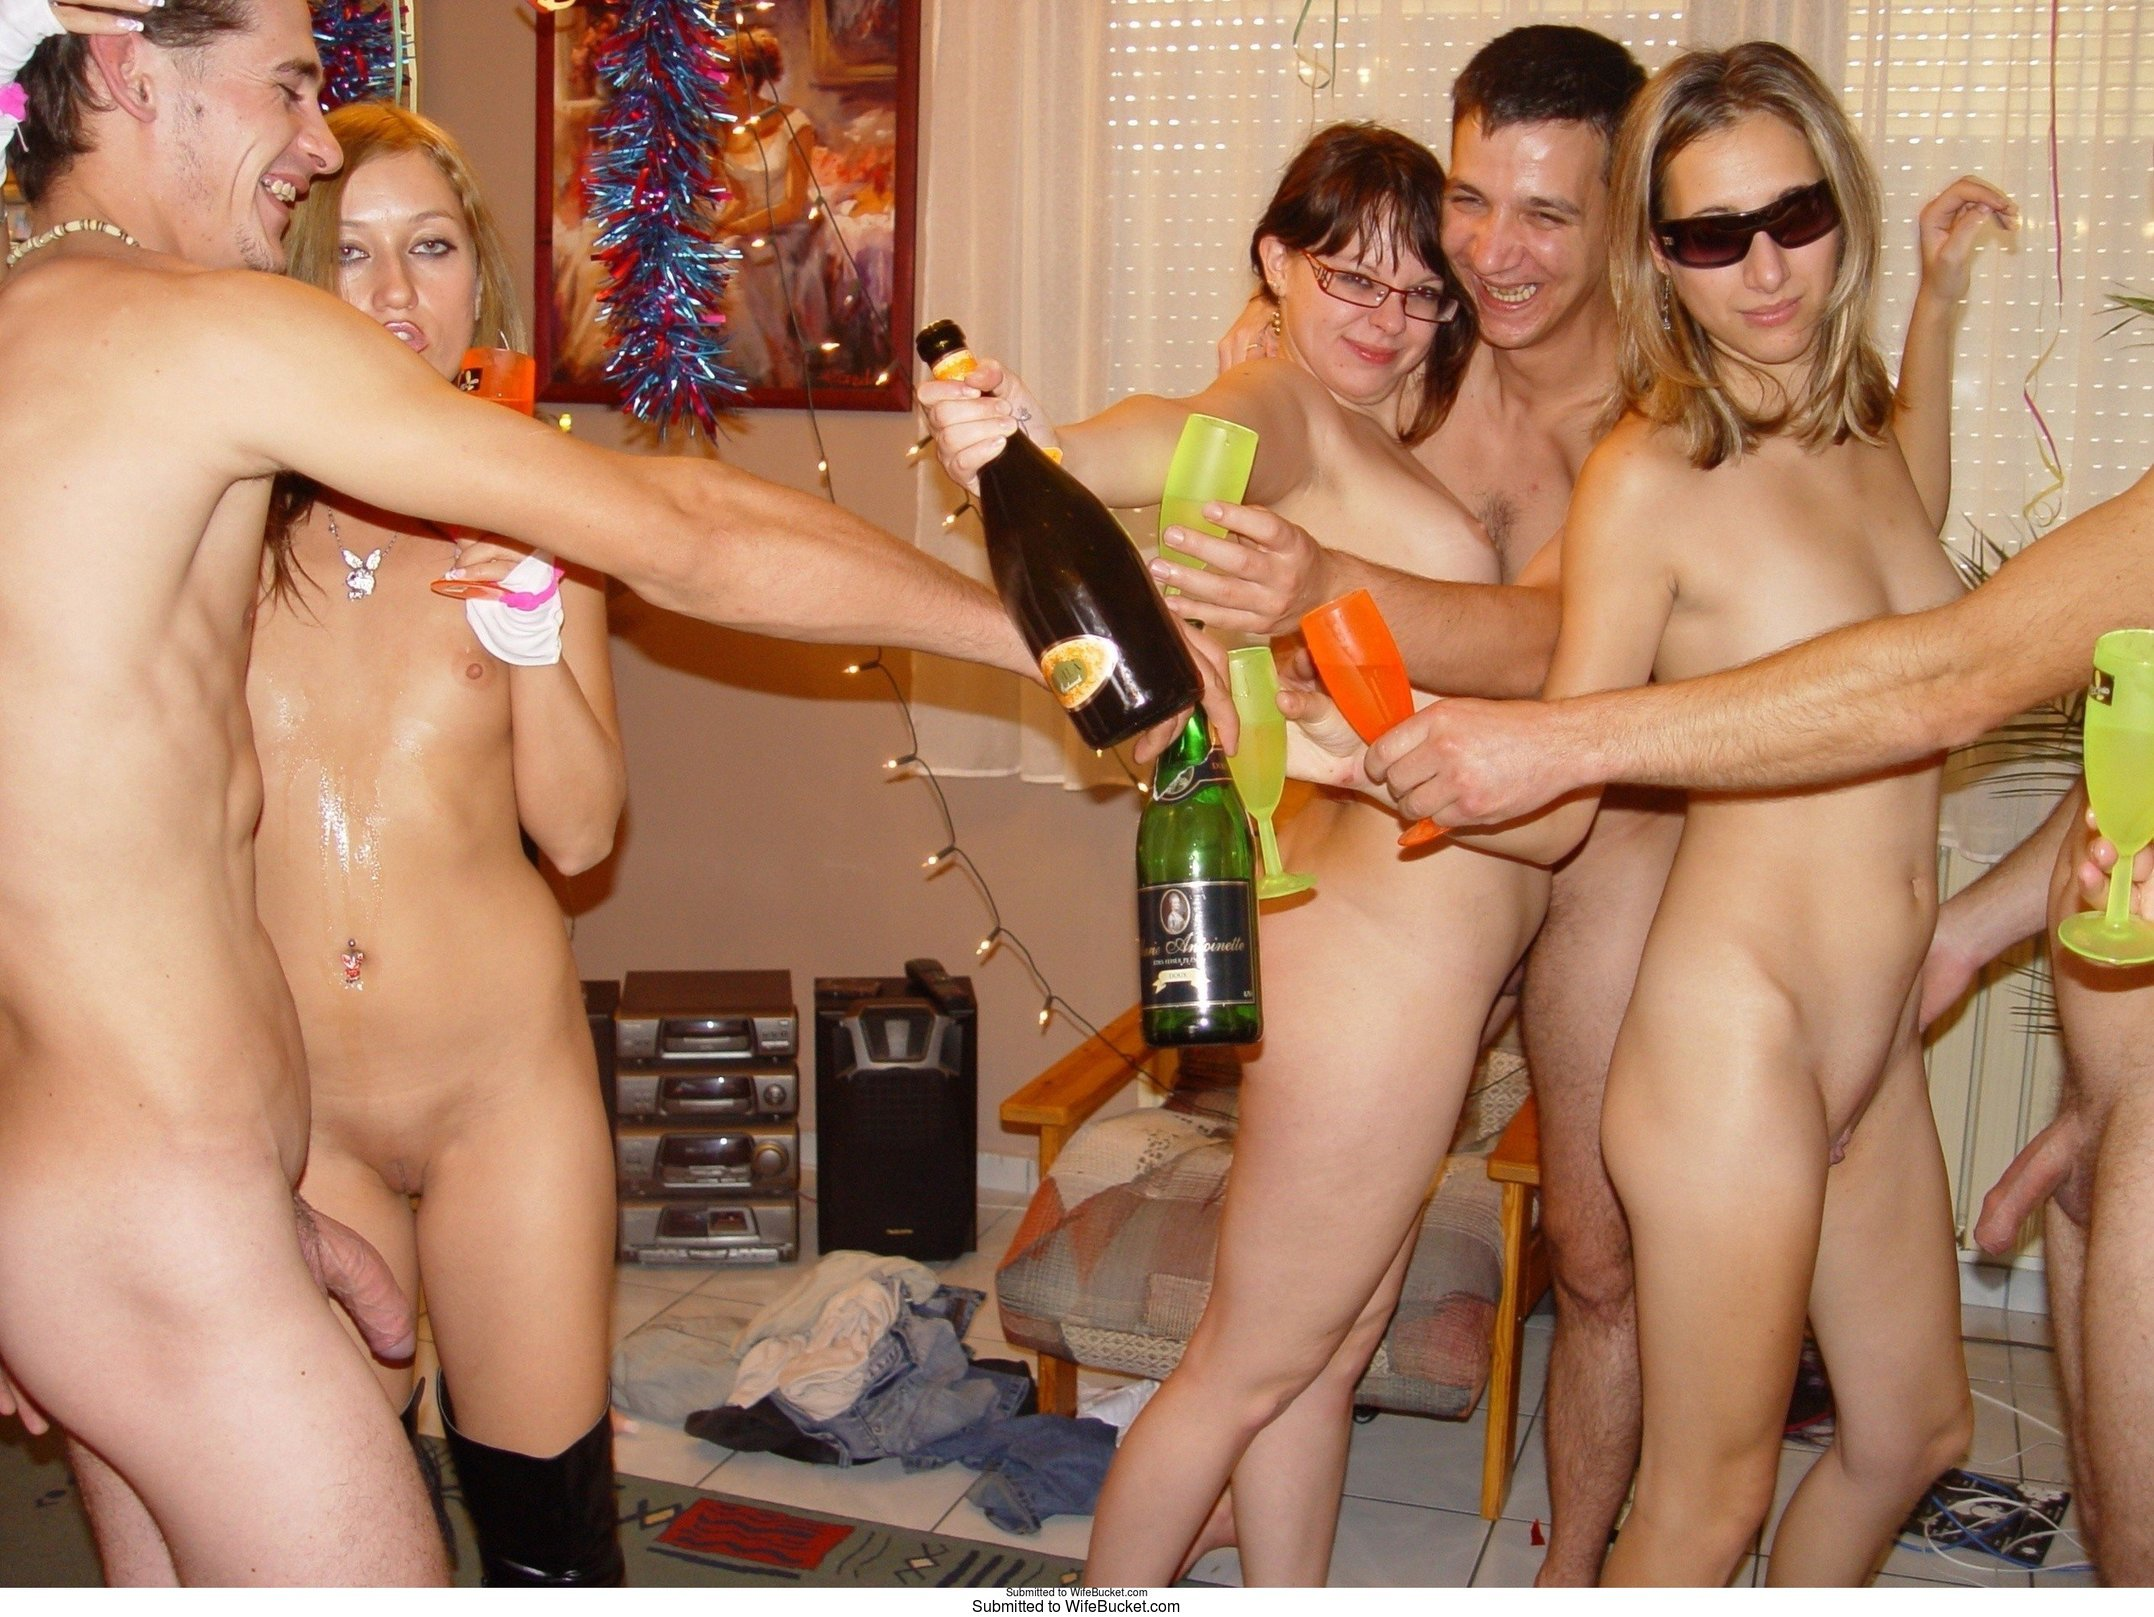 Milf swingers bukkake house party amateur